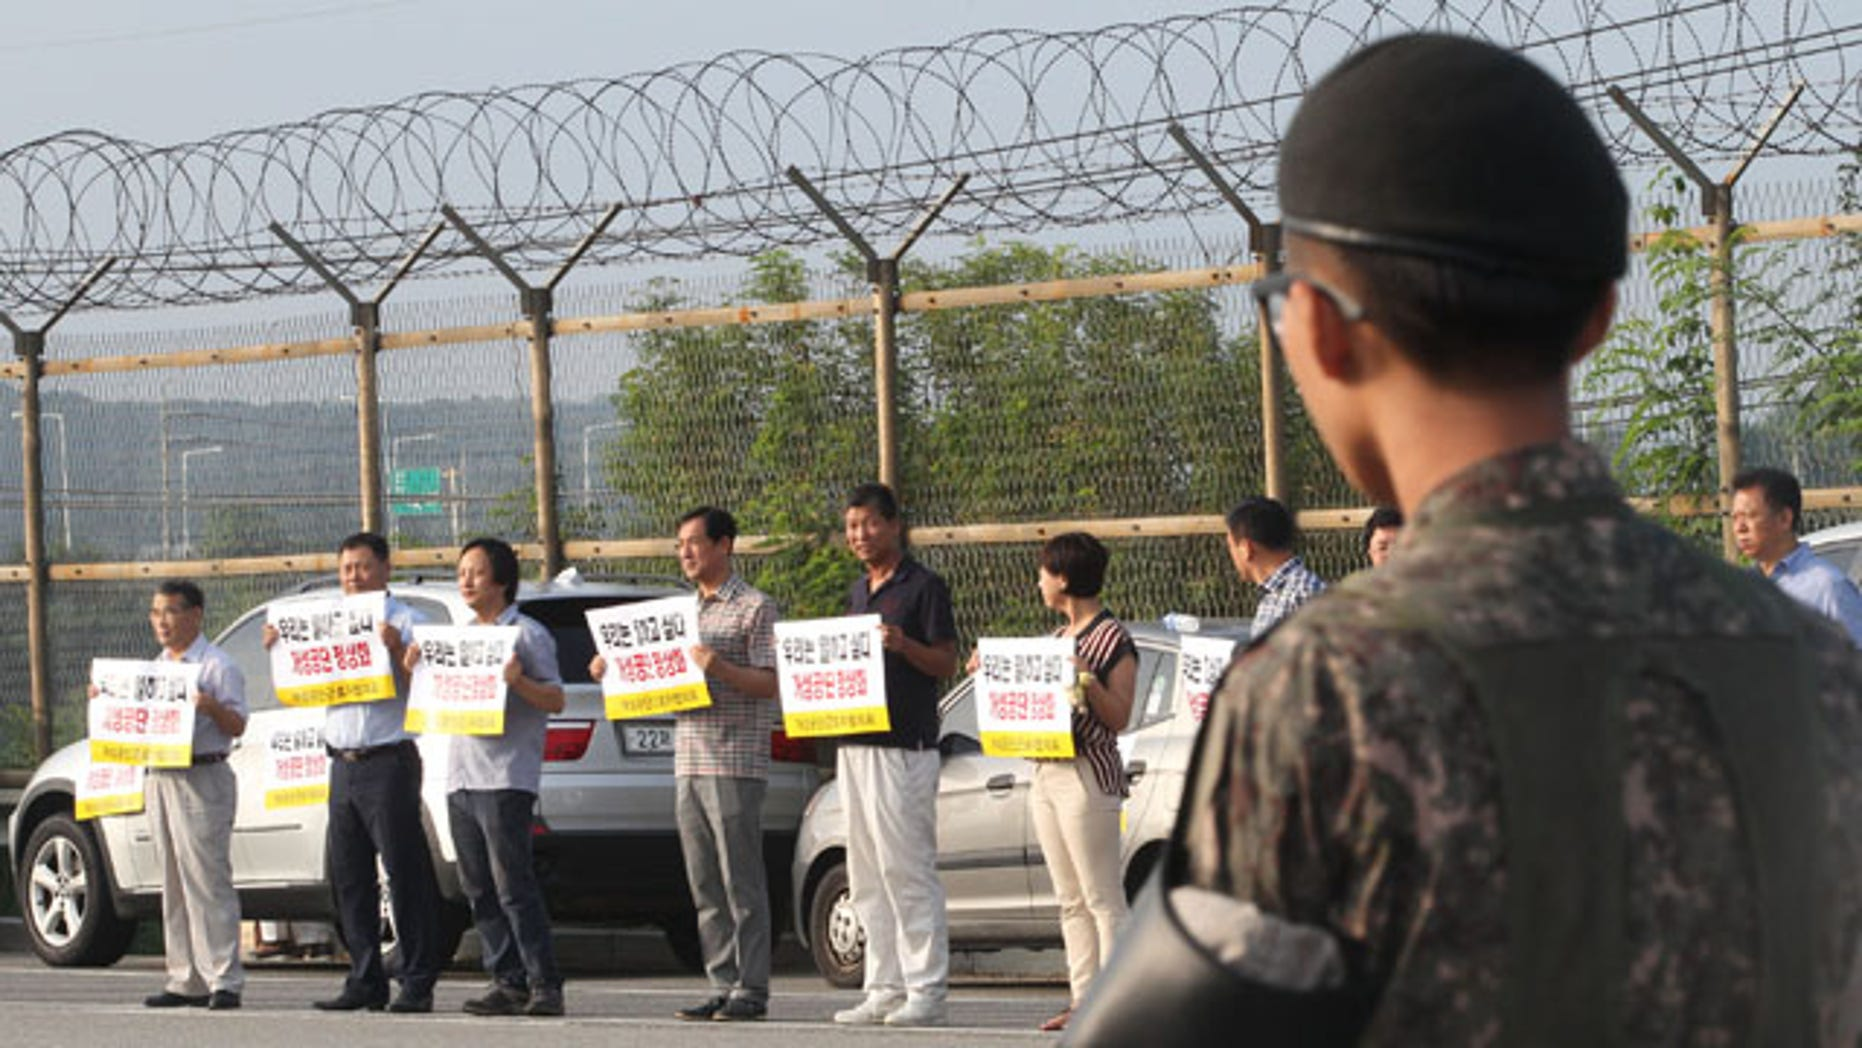 August 14,2013: South Korean owners who run factories in the stalled South Korea and North Korea's joint Kaesong Industrial Complex hold signs as they demand South Korean government and North Korean authorities normalize the operation of the joint industrial complex